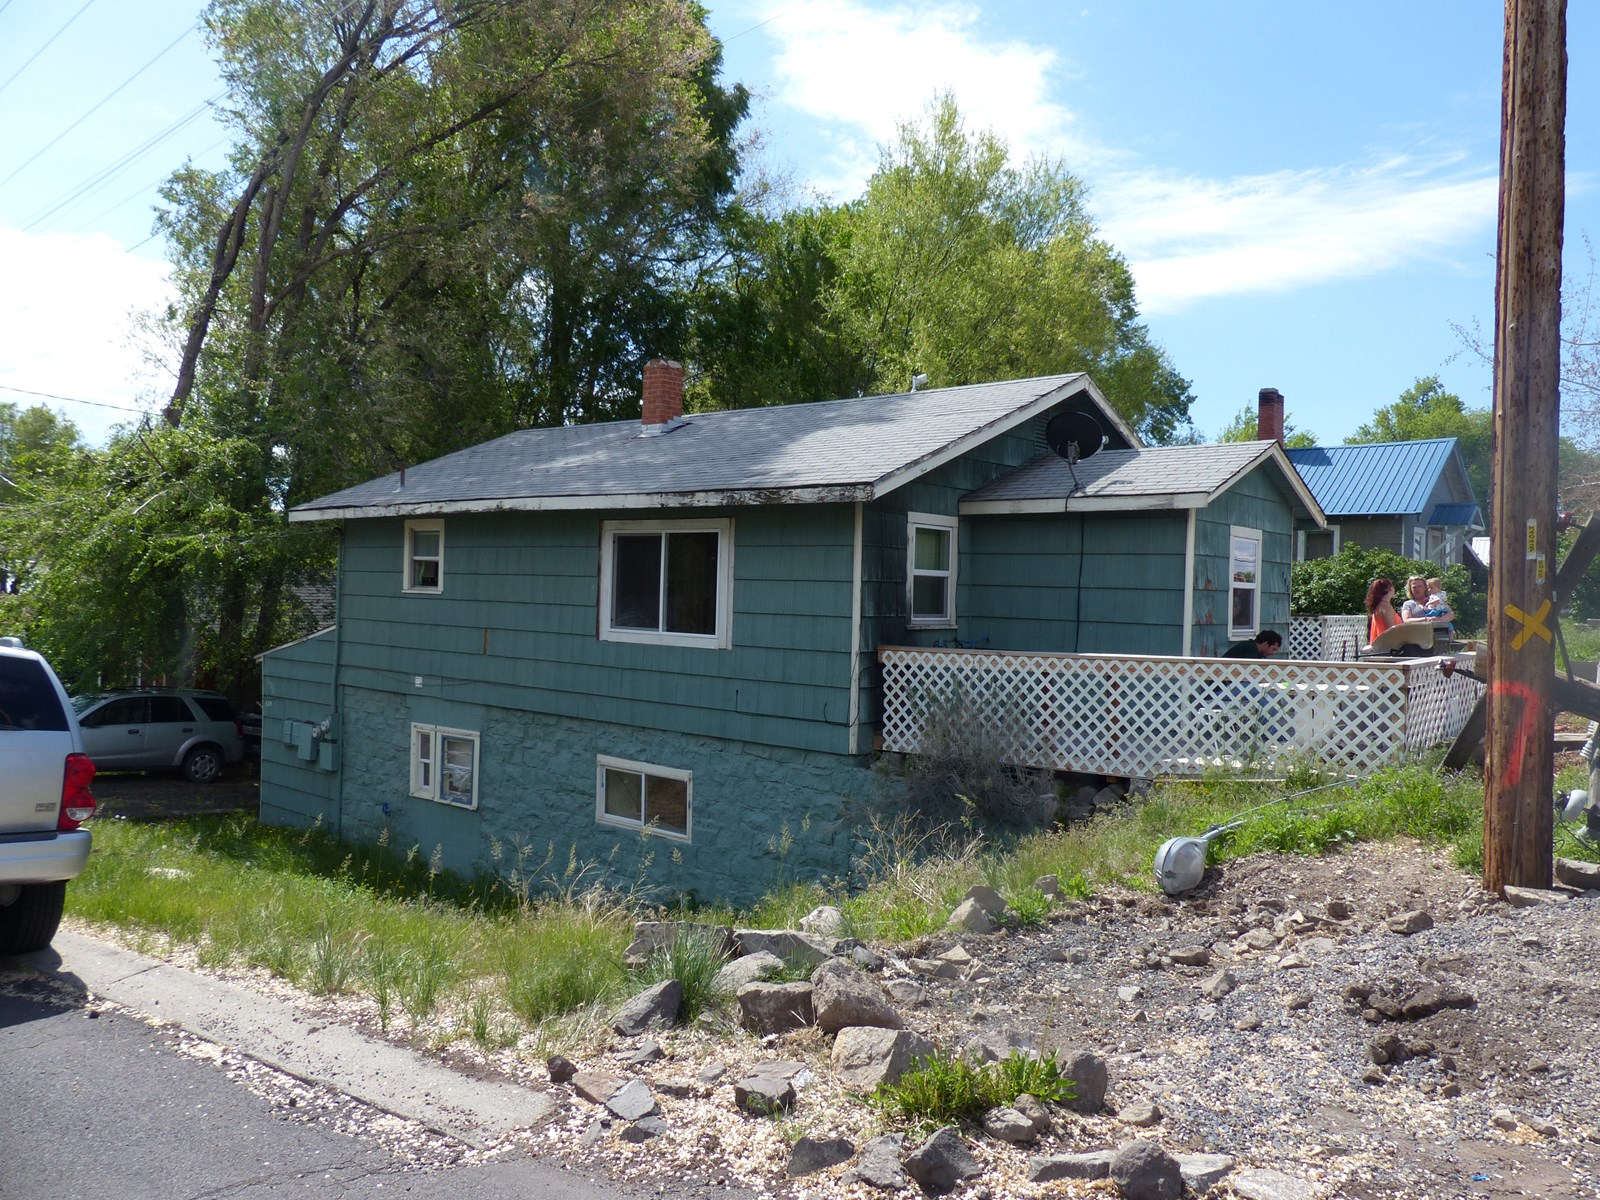 DUPLEX FOR SALE IN BURNS OREGON